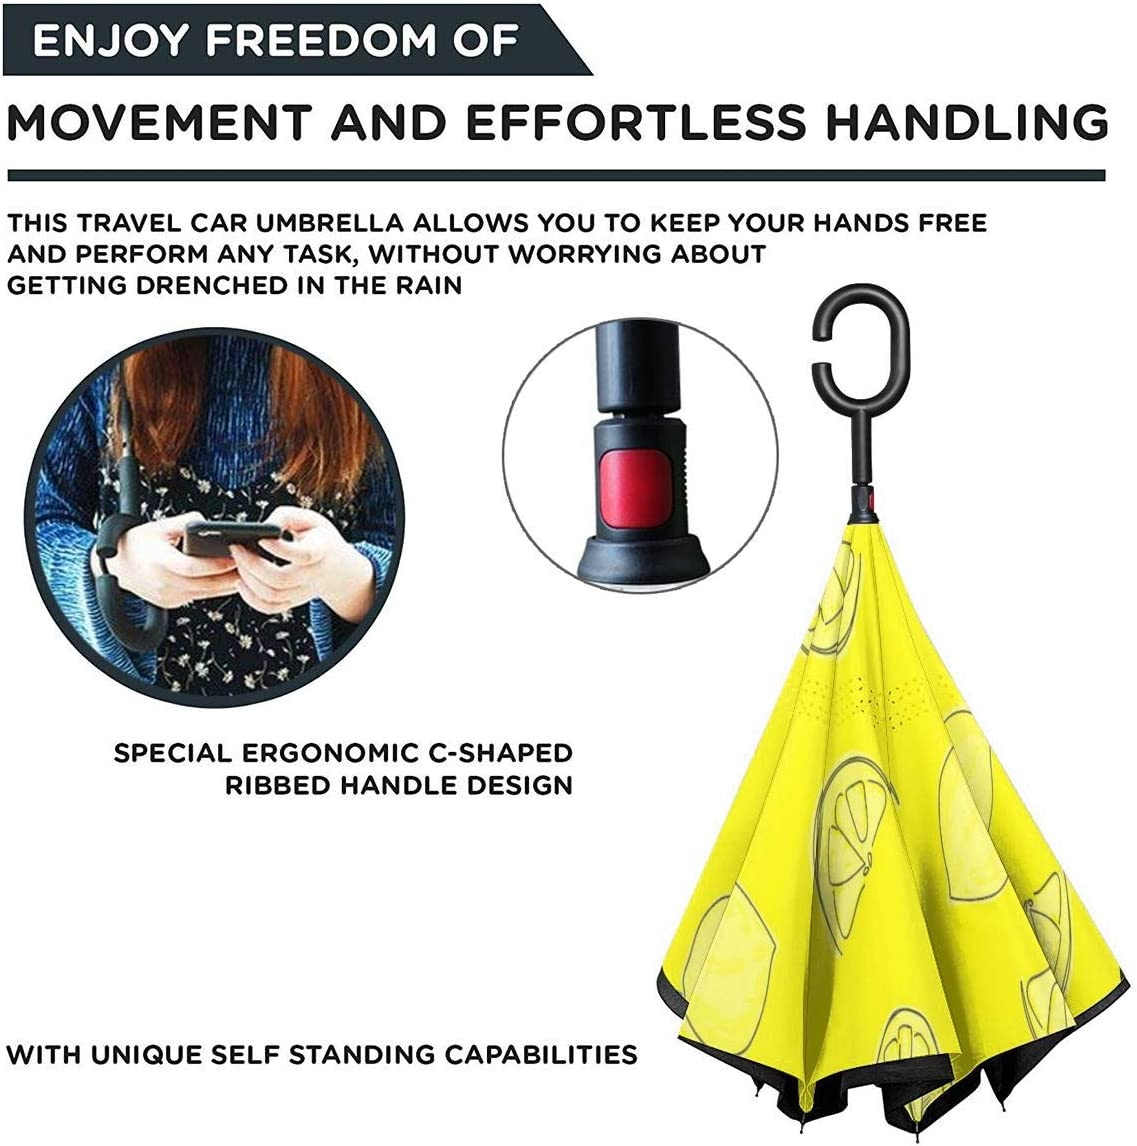 Self Stand Upside Down with C-Shaped Handle PYFXSALA Yellow Lemon Windproof Inverted Umbrella Double Layer UV Protection Folding Reverse Umbrella for Car Rain Outdoor